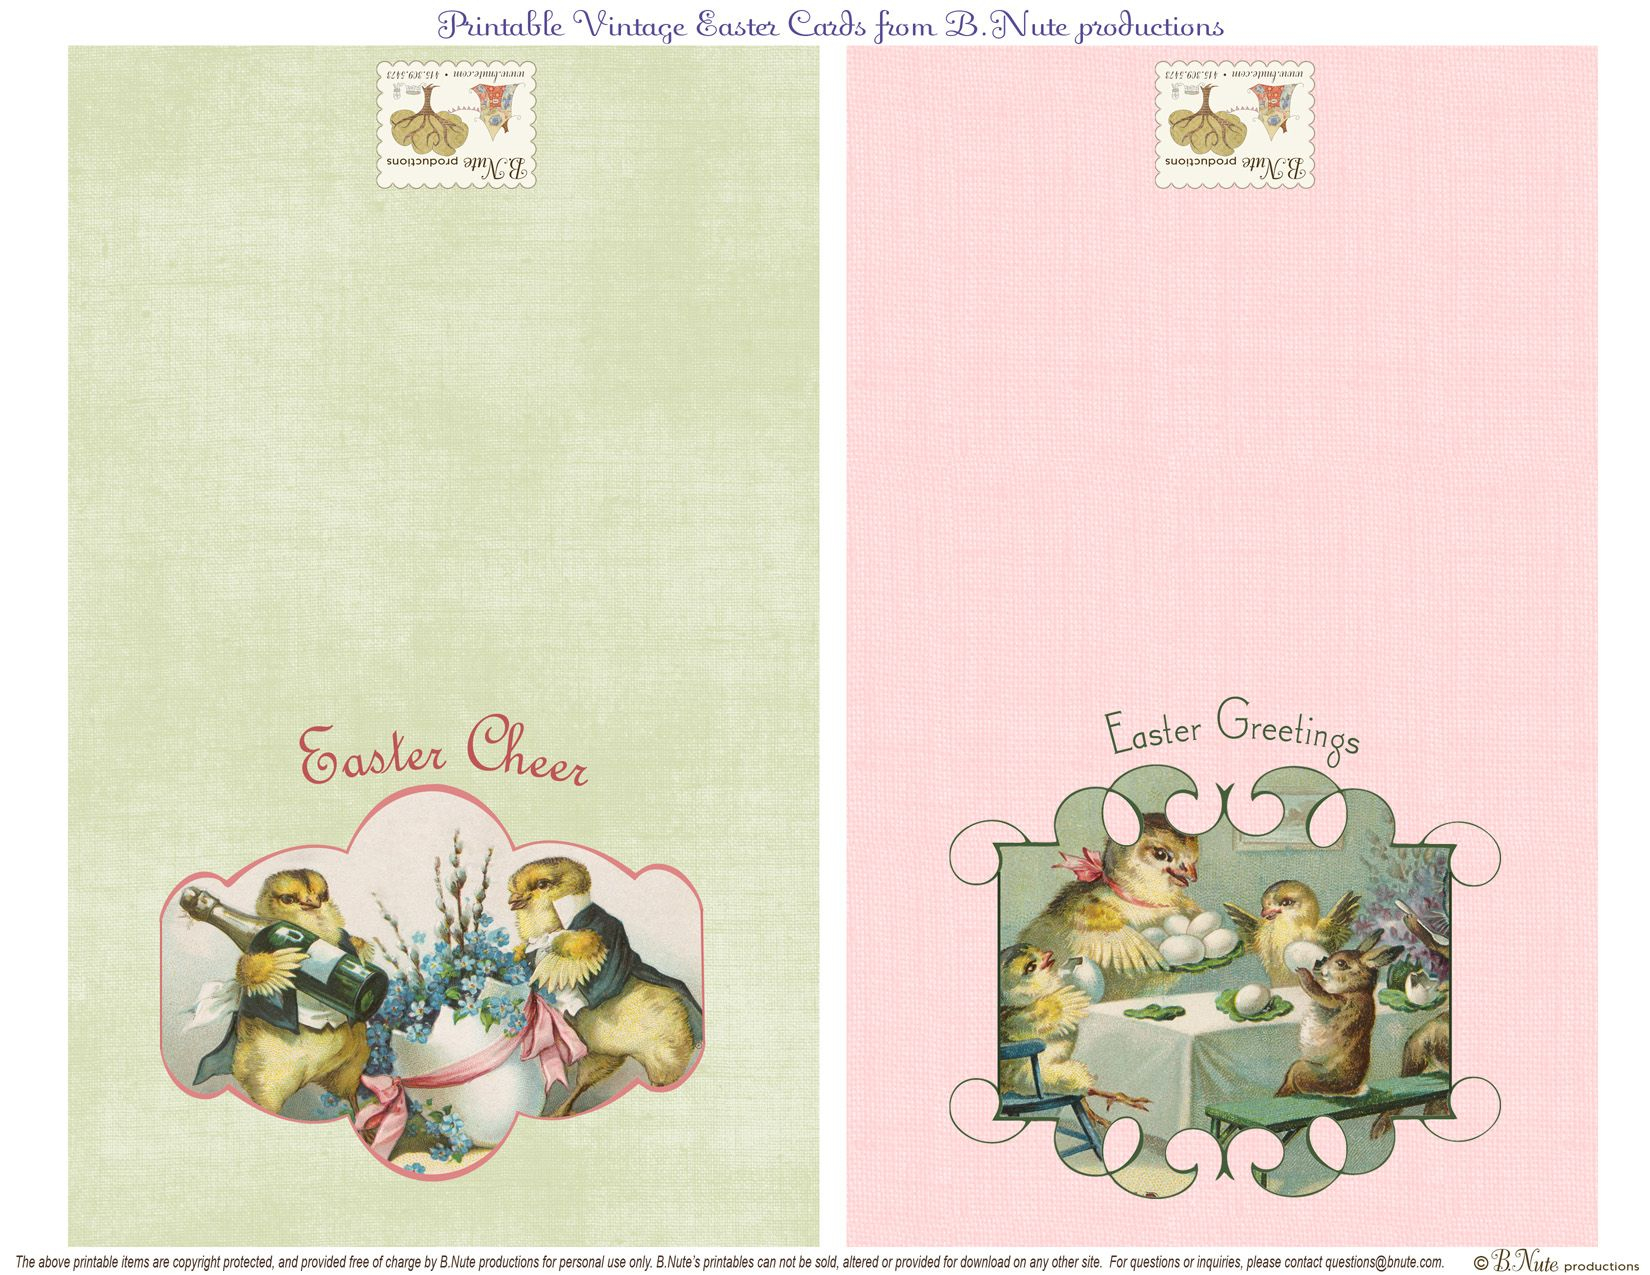 Free Printable Vintage Easter Folded Cards. I Finally Found These - Free Printable Easter Greeting Cards